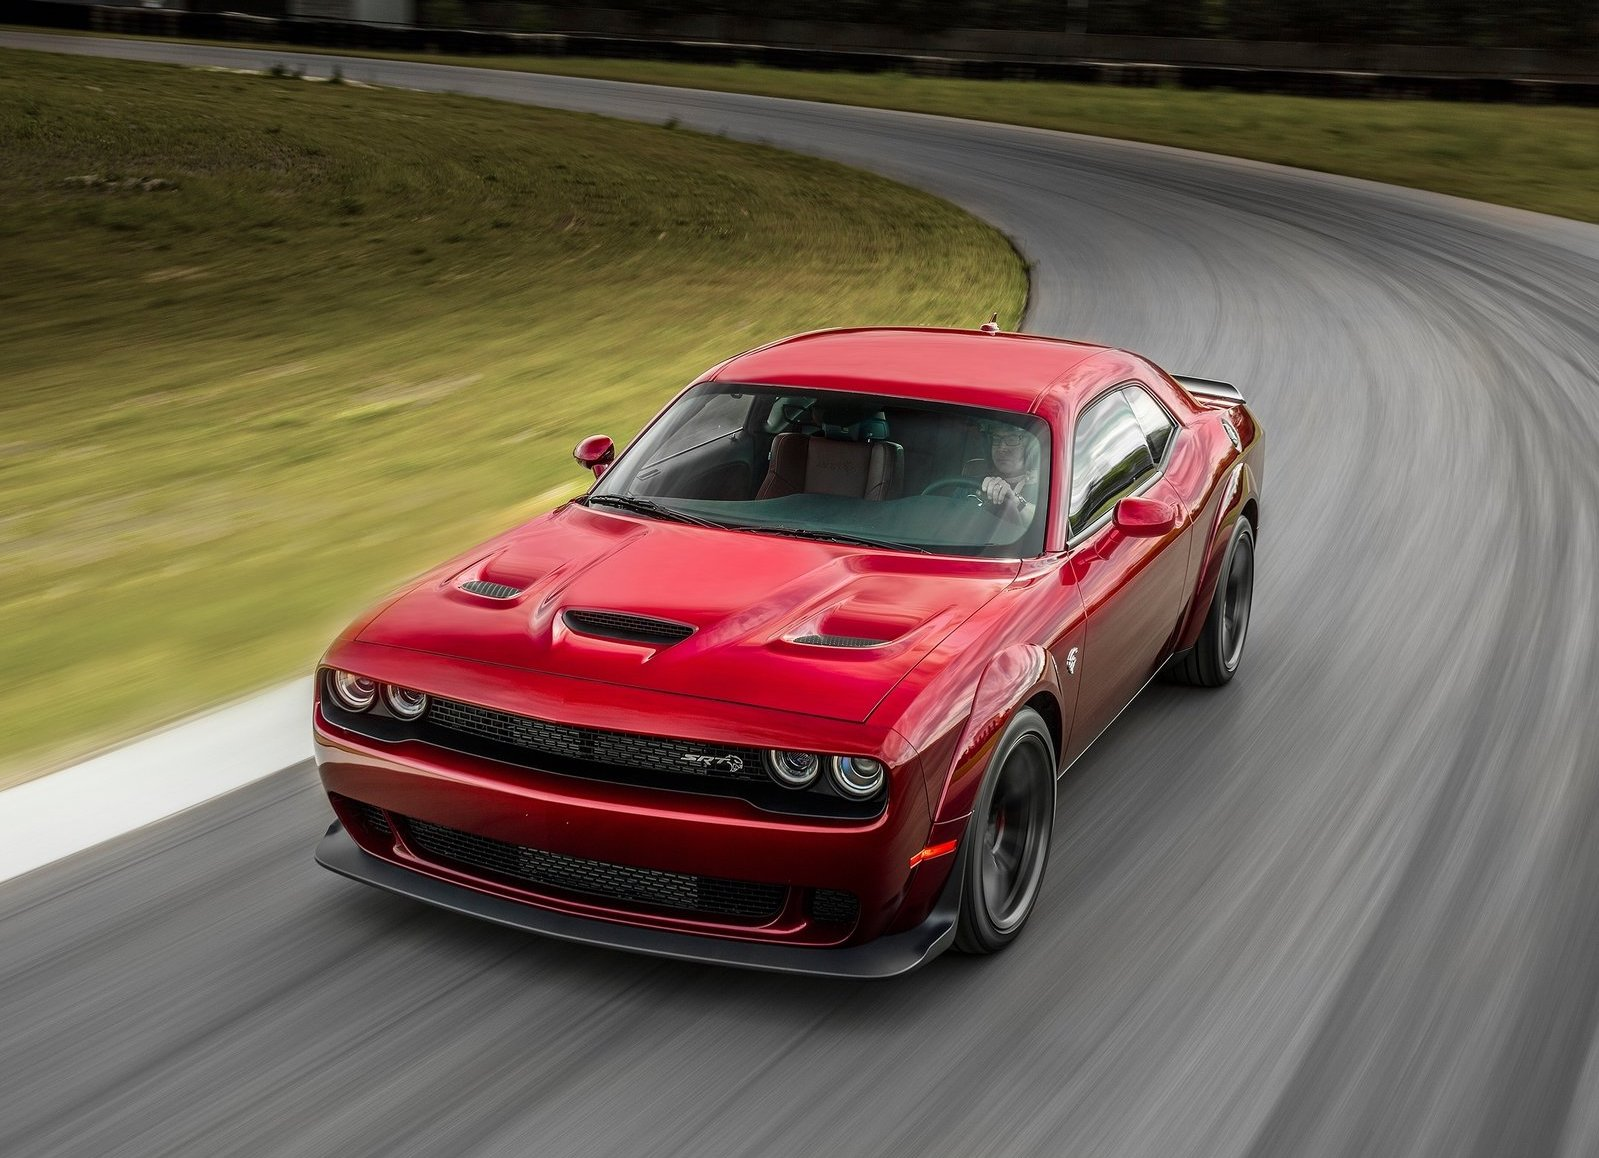 2018 Dodge Challenger SRT Hellcat Widebody on track